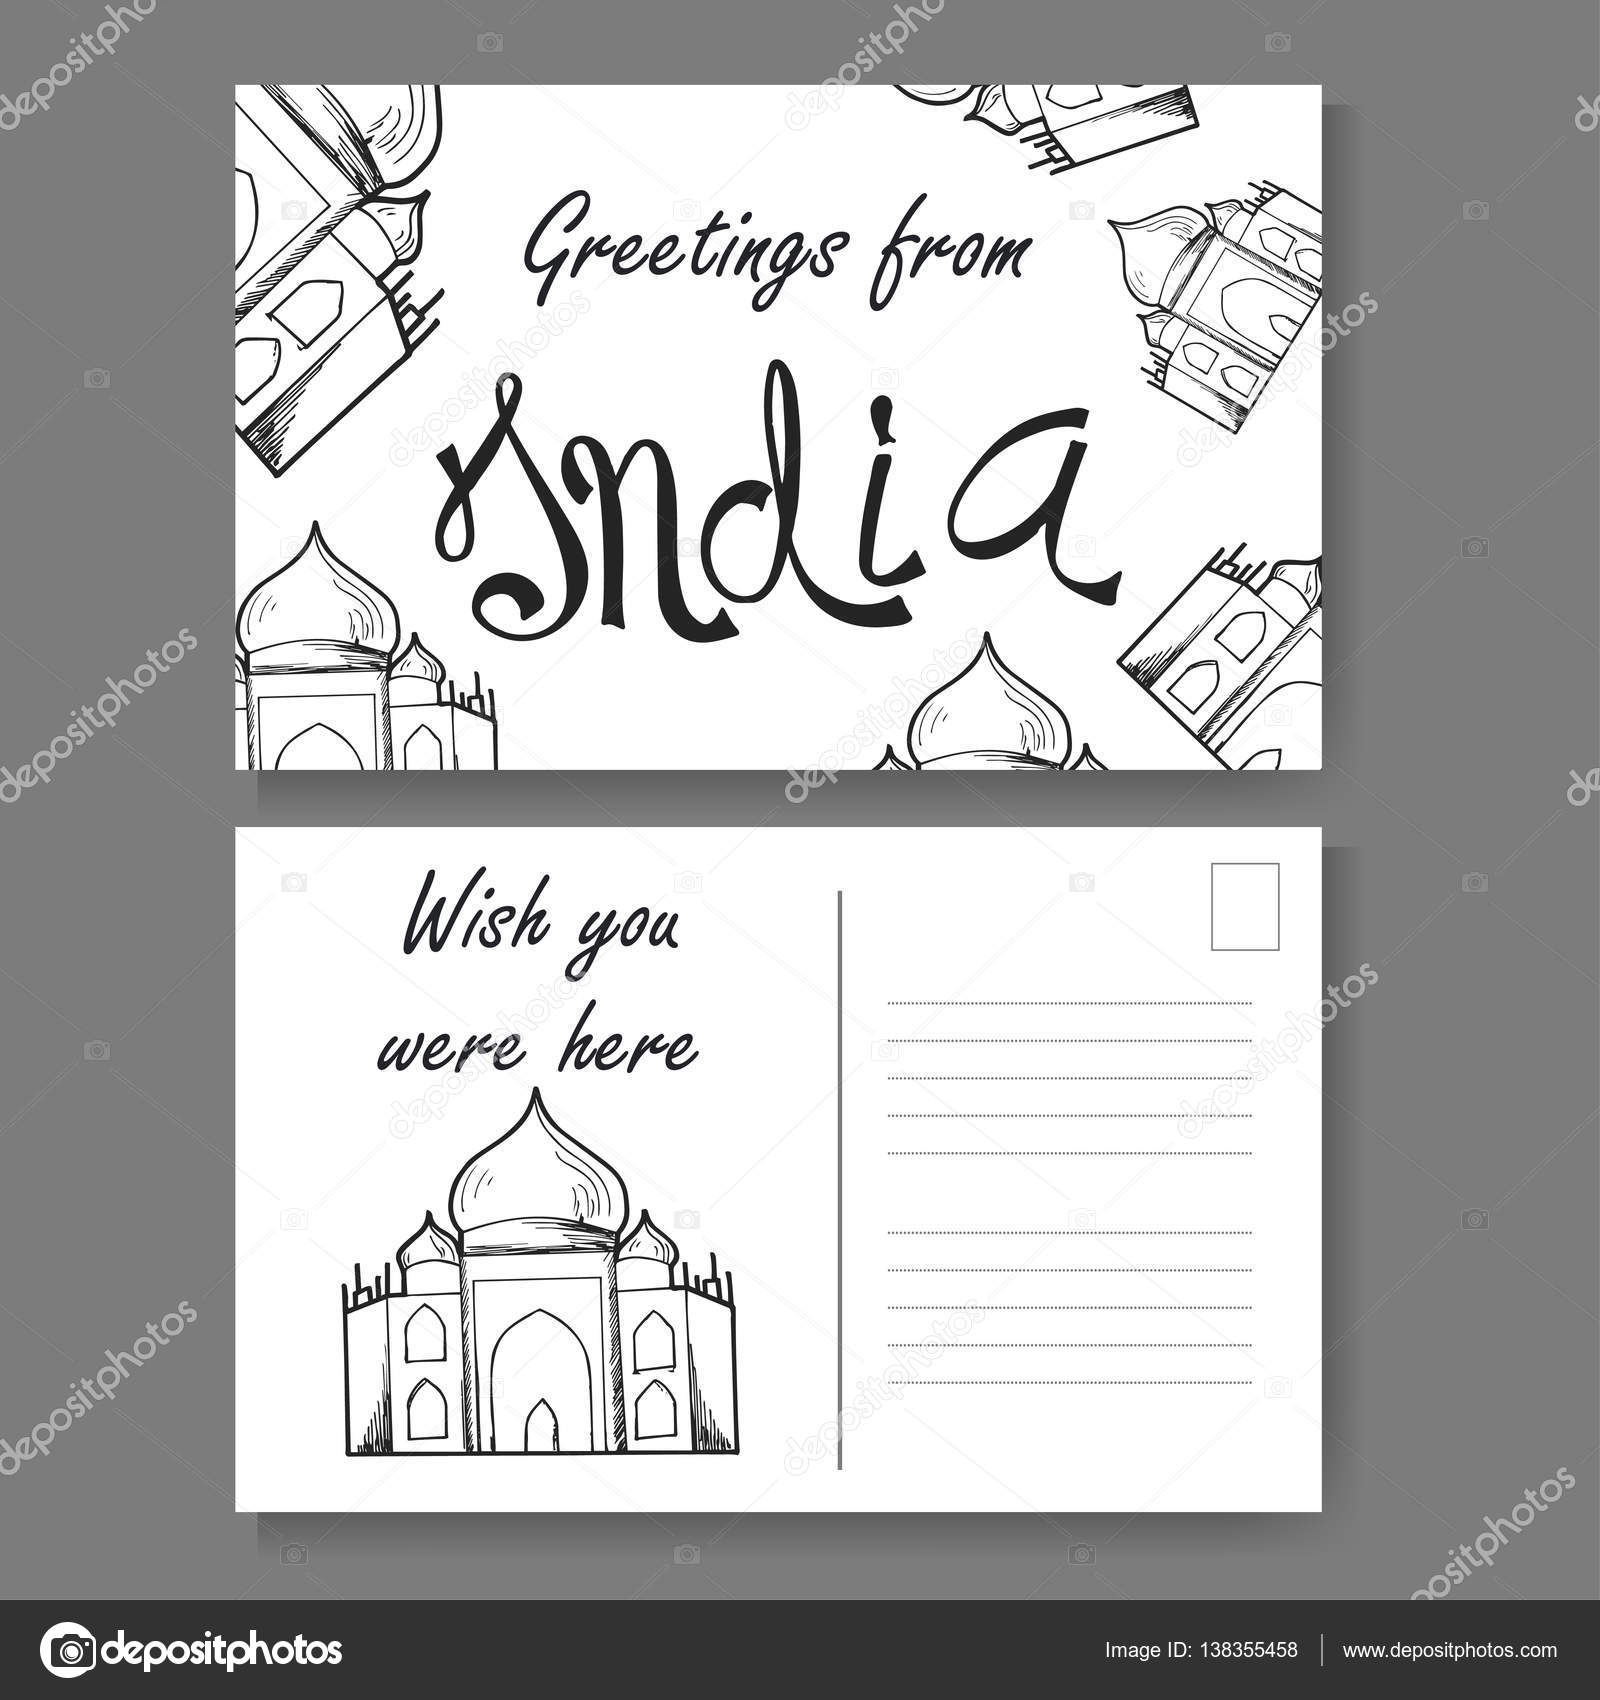 Postcard from delhi hand drawn lettering and sketch greetings postcard from delhi hand drawn lettering and sketch greetings from india vector illestration kristyandbryce Choice Image